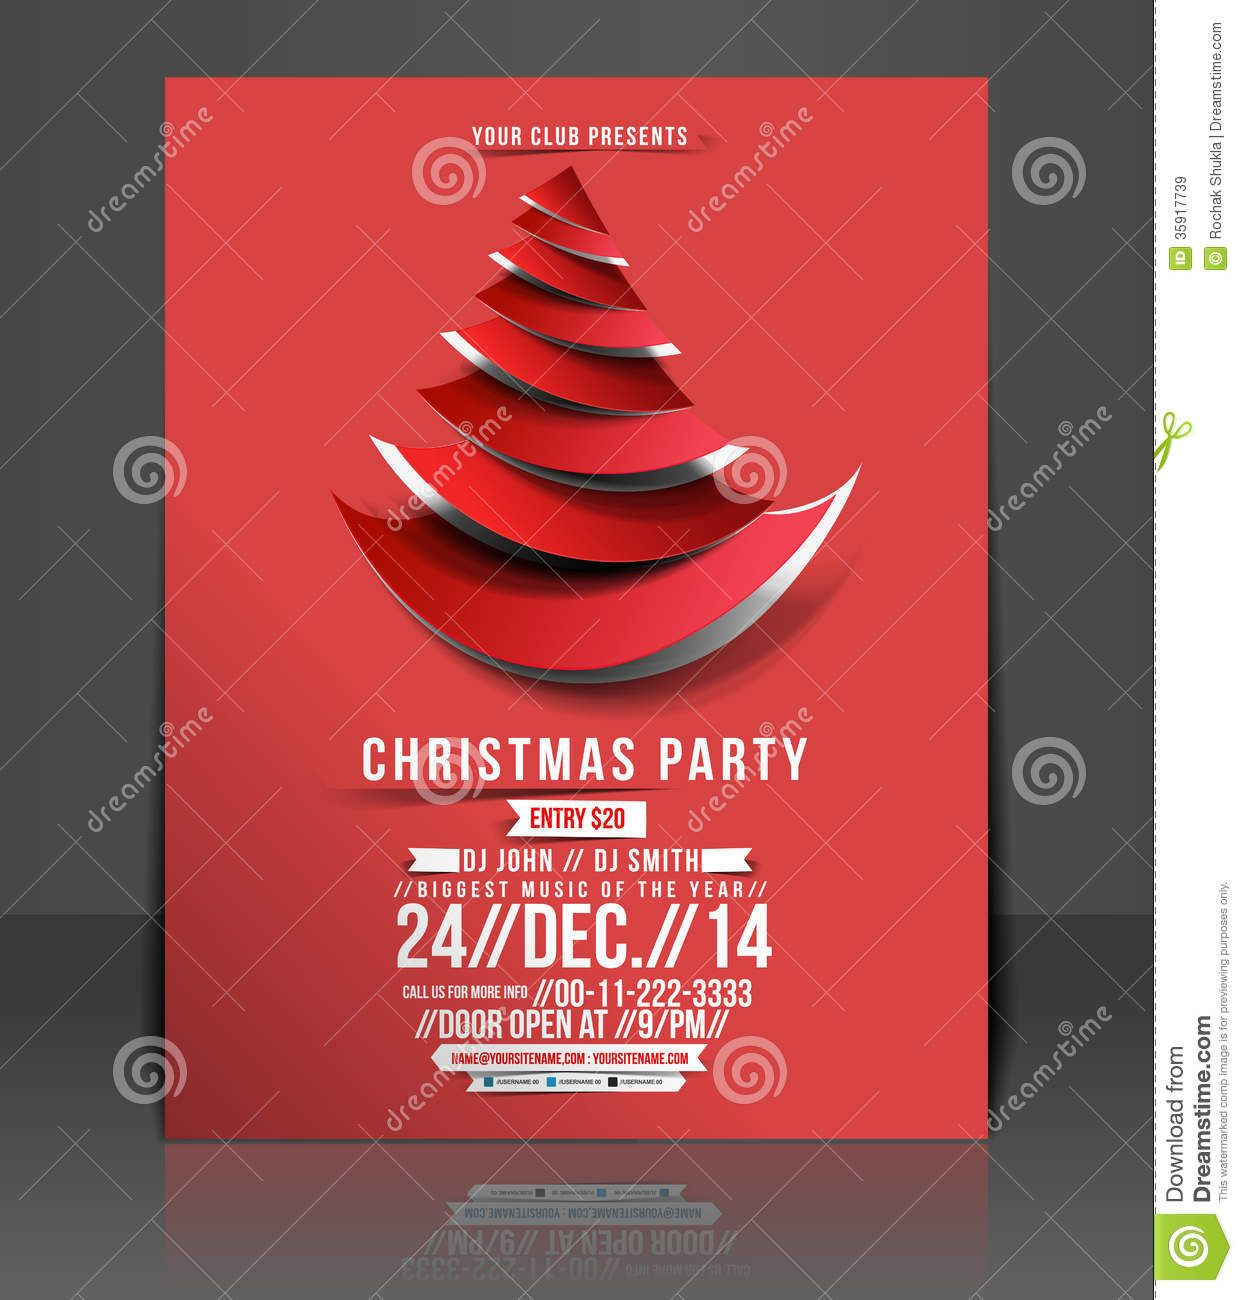 Holiday Party Flyer  Google Search  Minacs